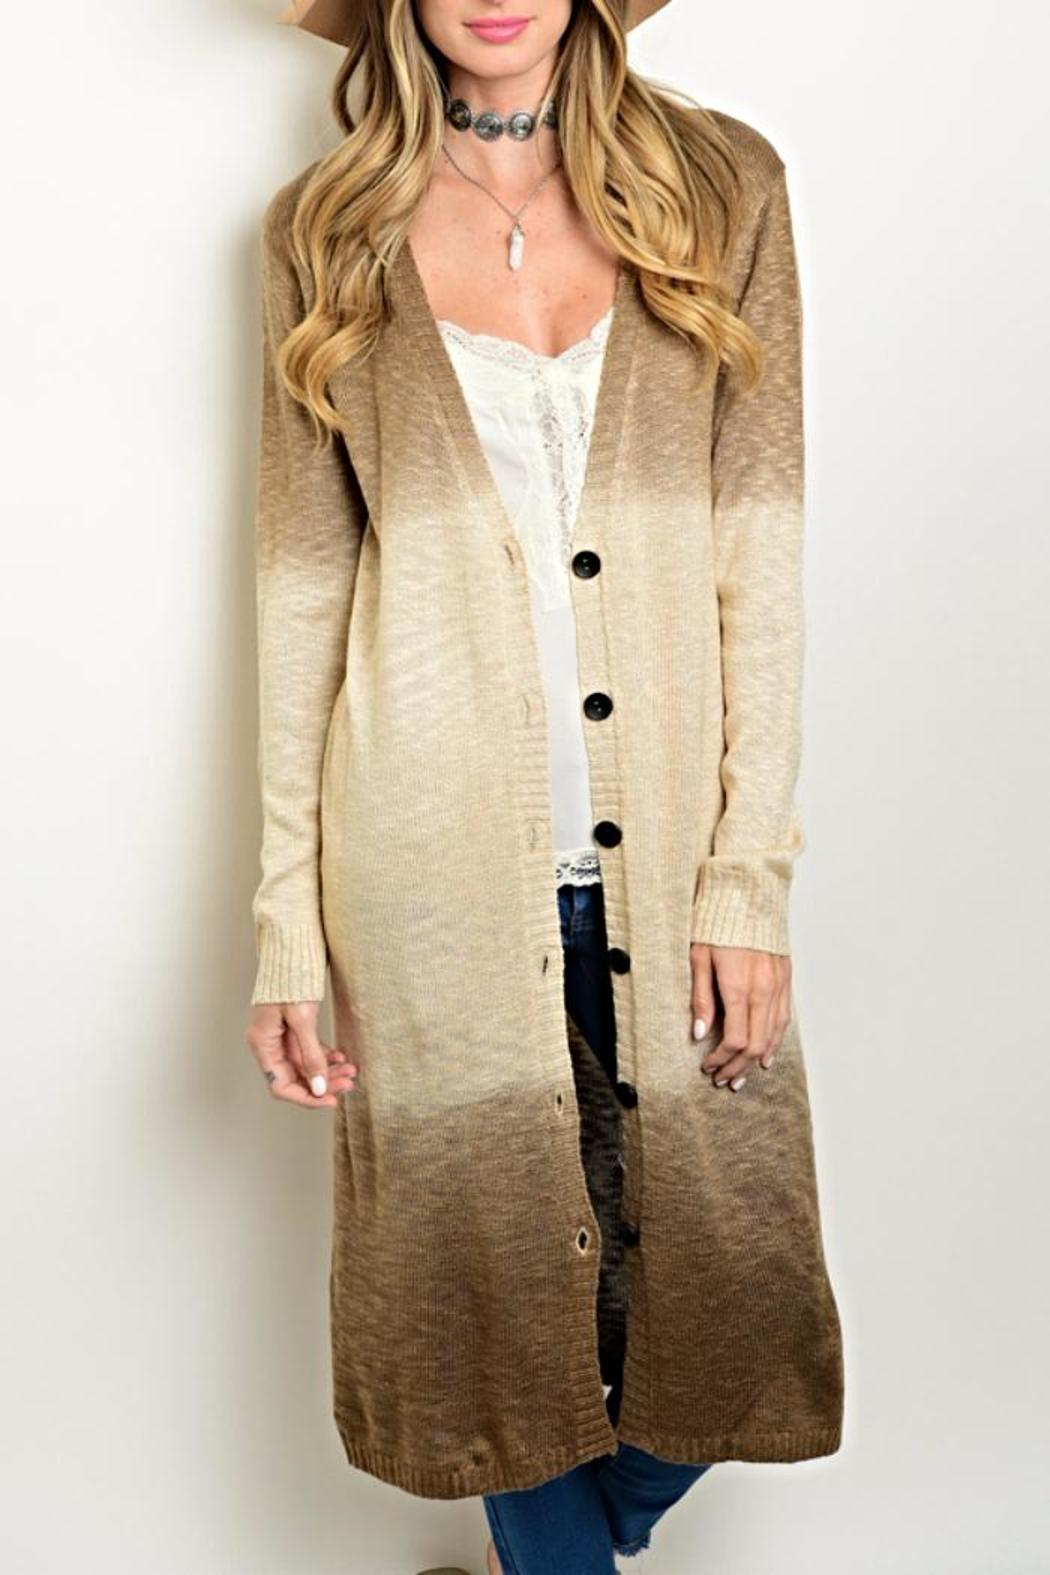 Very J Ombre Duster Cardigan from Kansas by twill tradE — Shoptiques